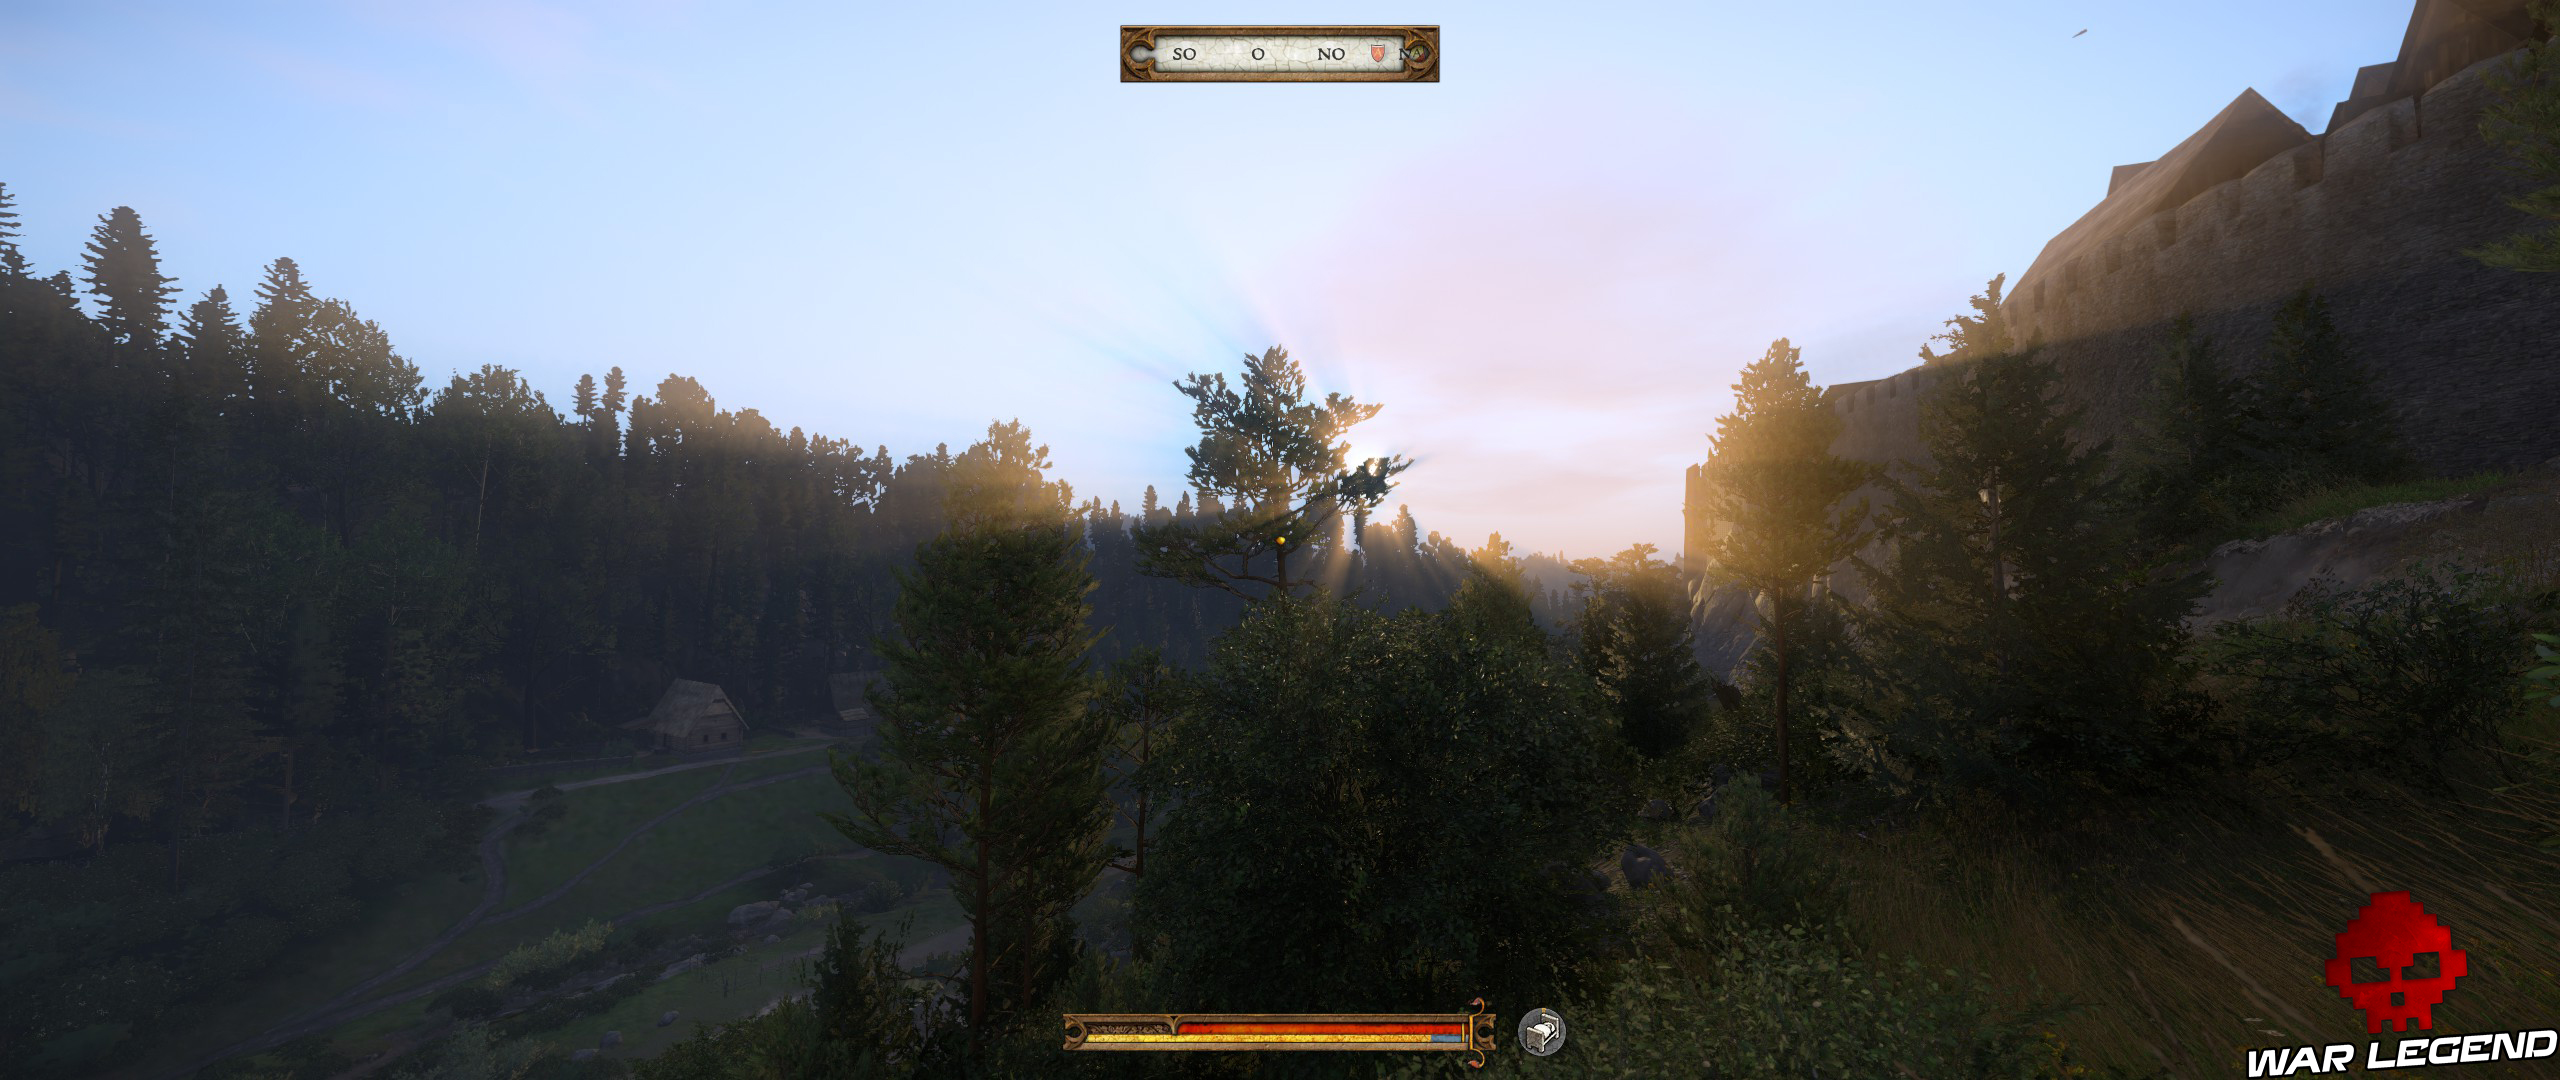 Kingdome Come Deliverance coucher de soleil